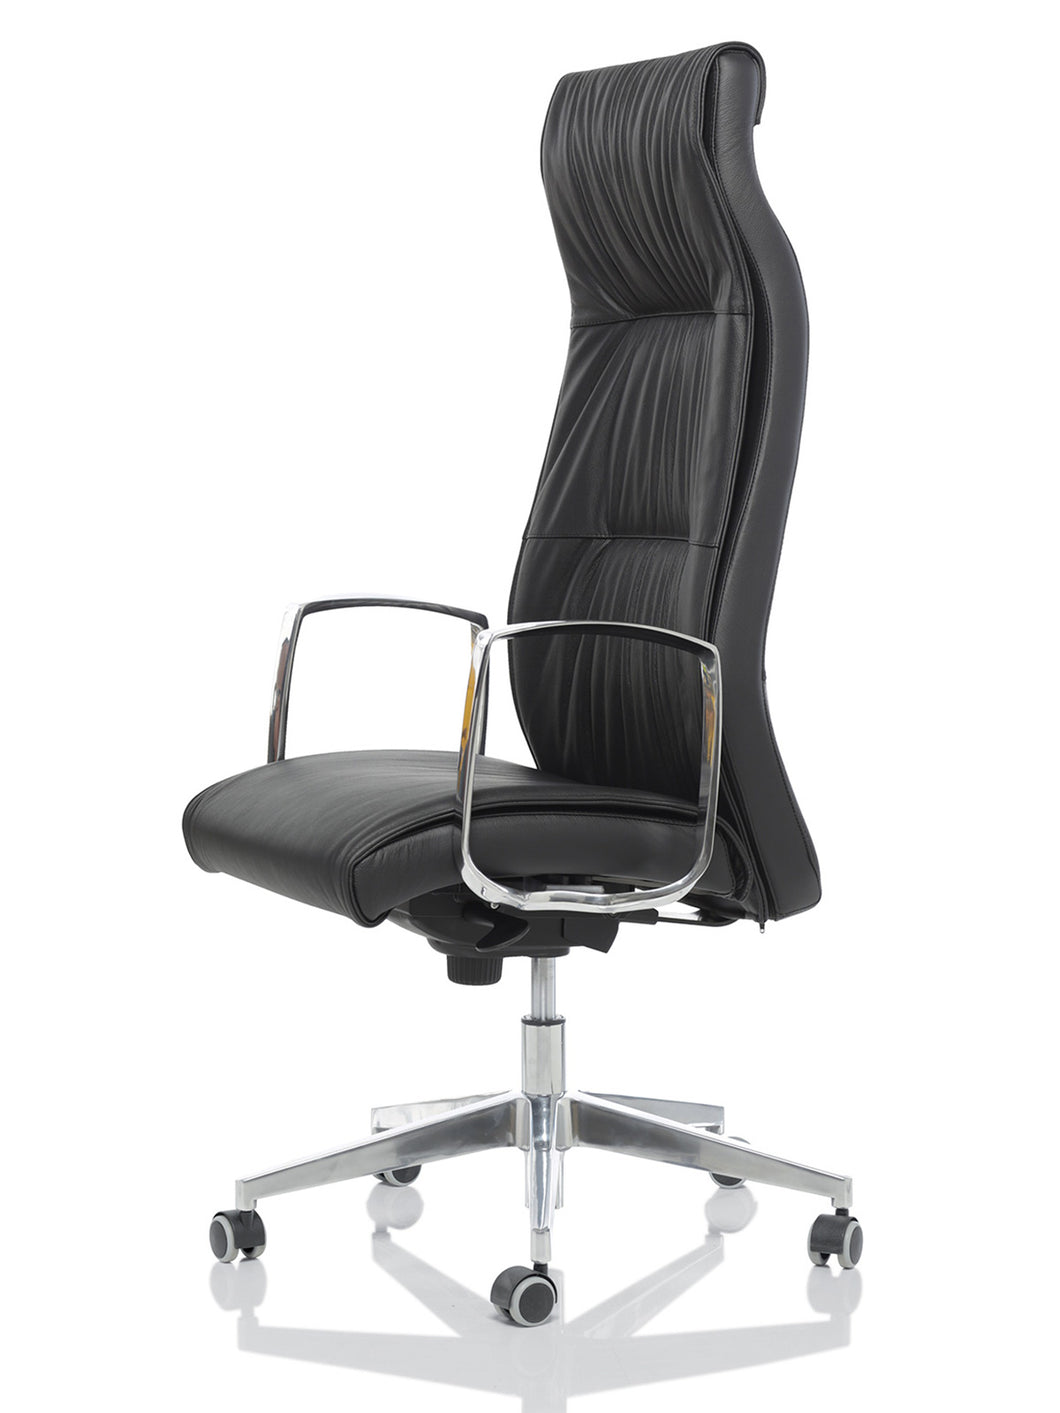 London - Executive High Back Leather Chair.